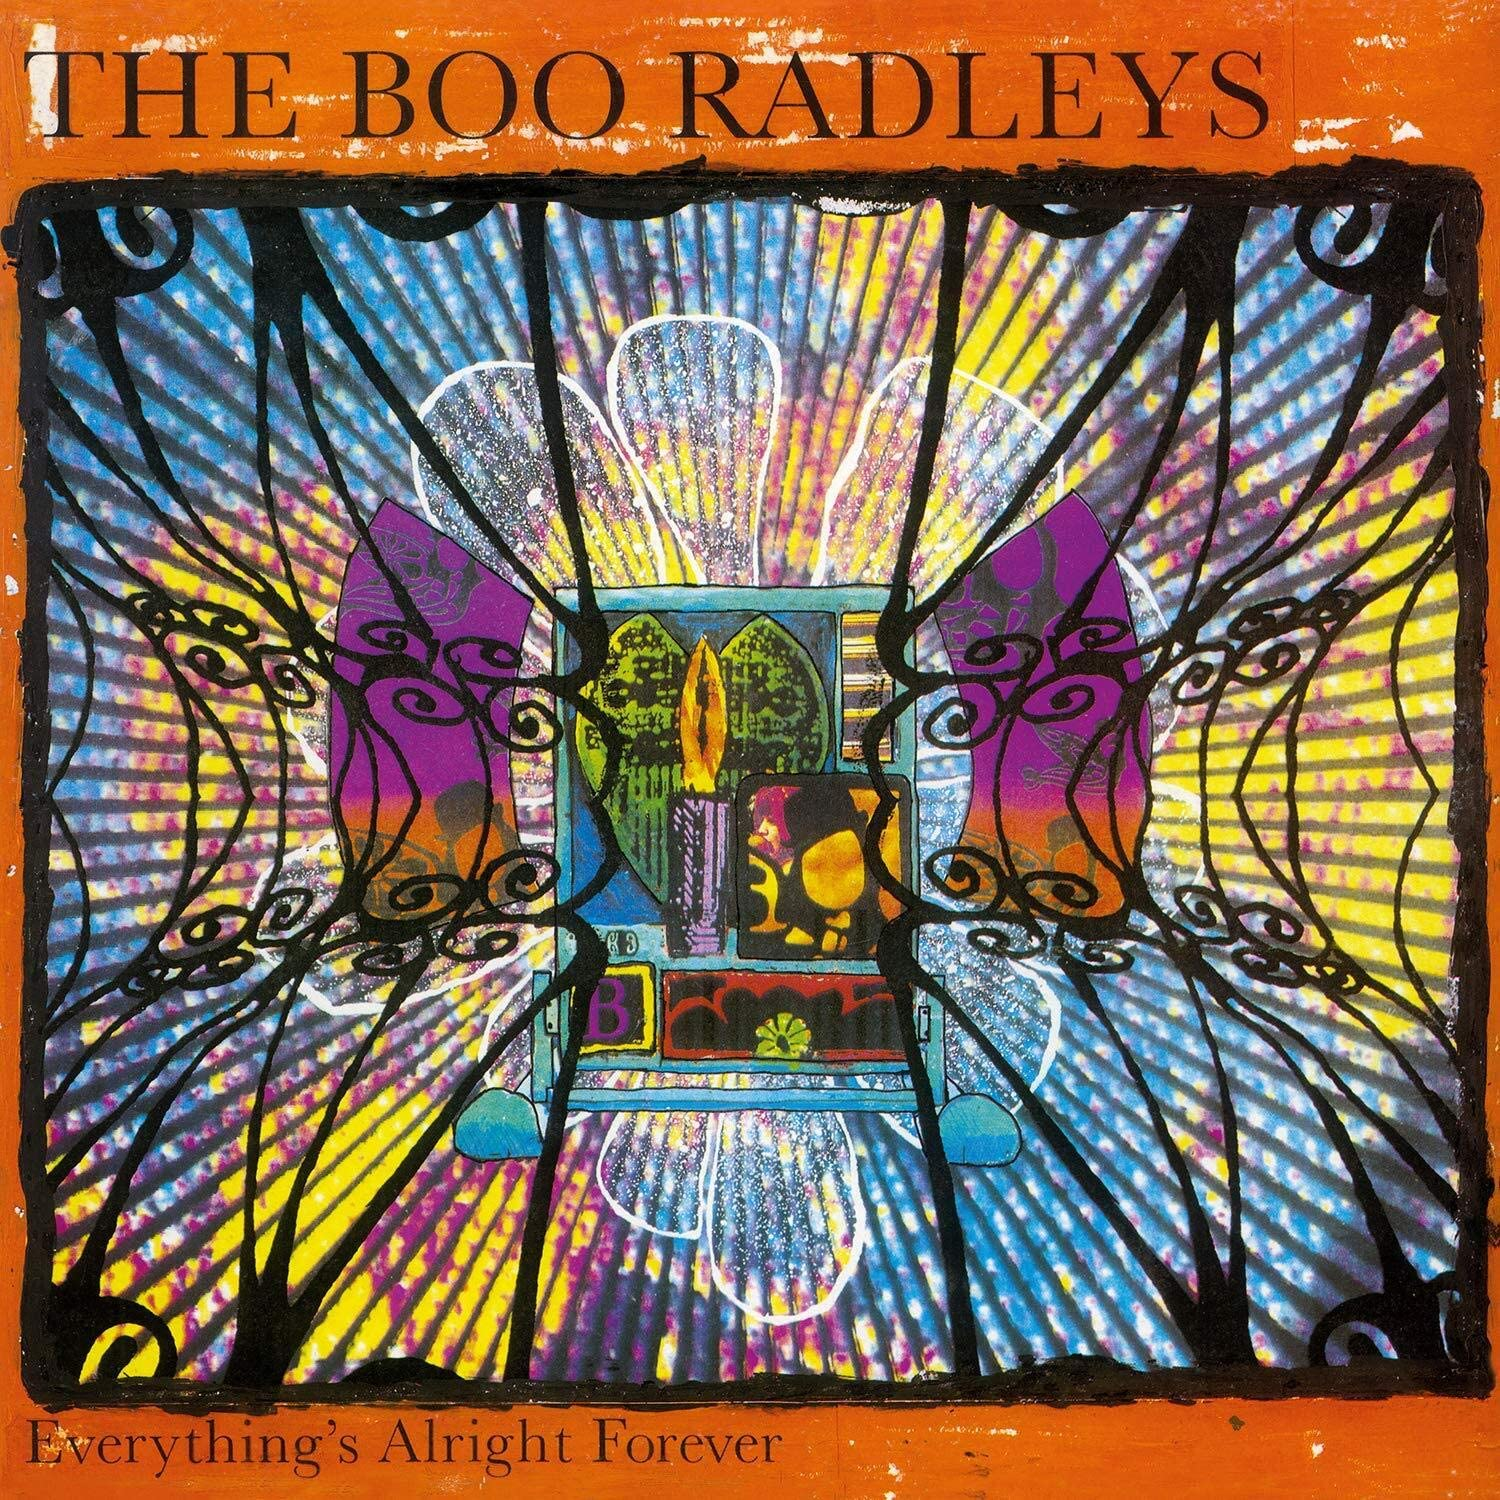 The Boo Radleys - Everything's Alright Forever Limited Edition Orange Vinyl Individually Numbered